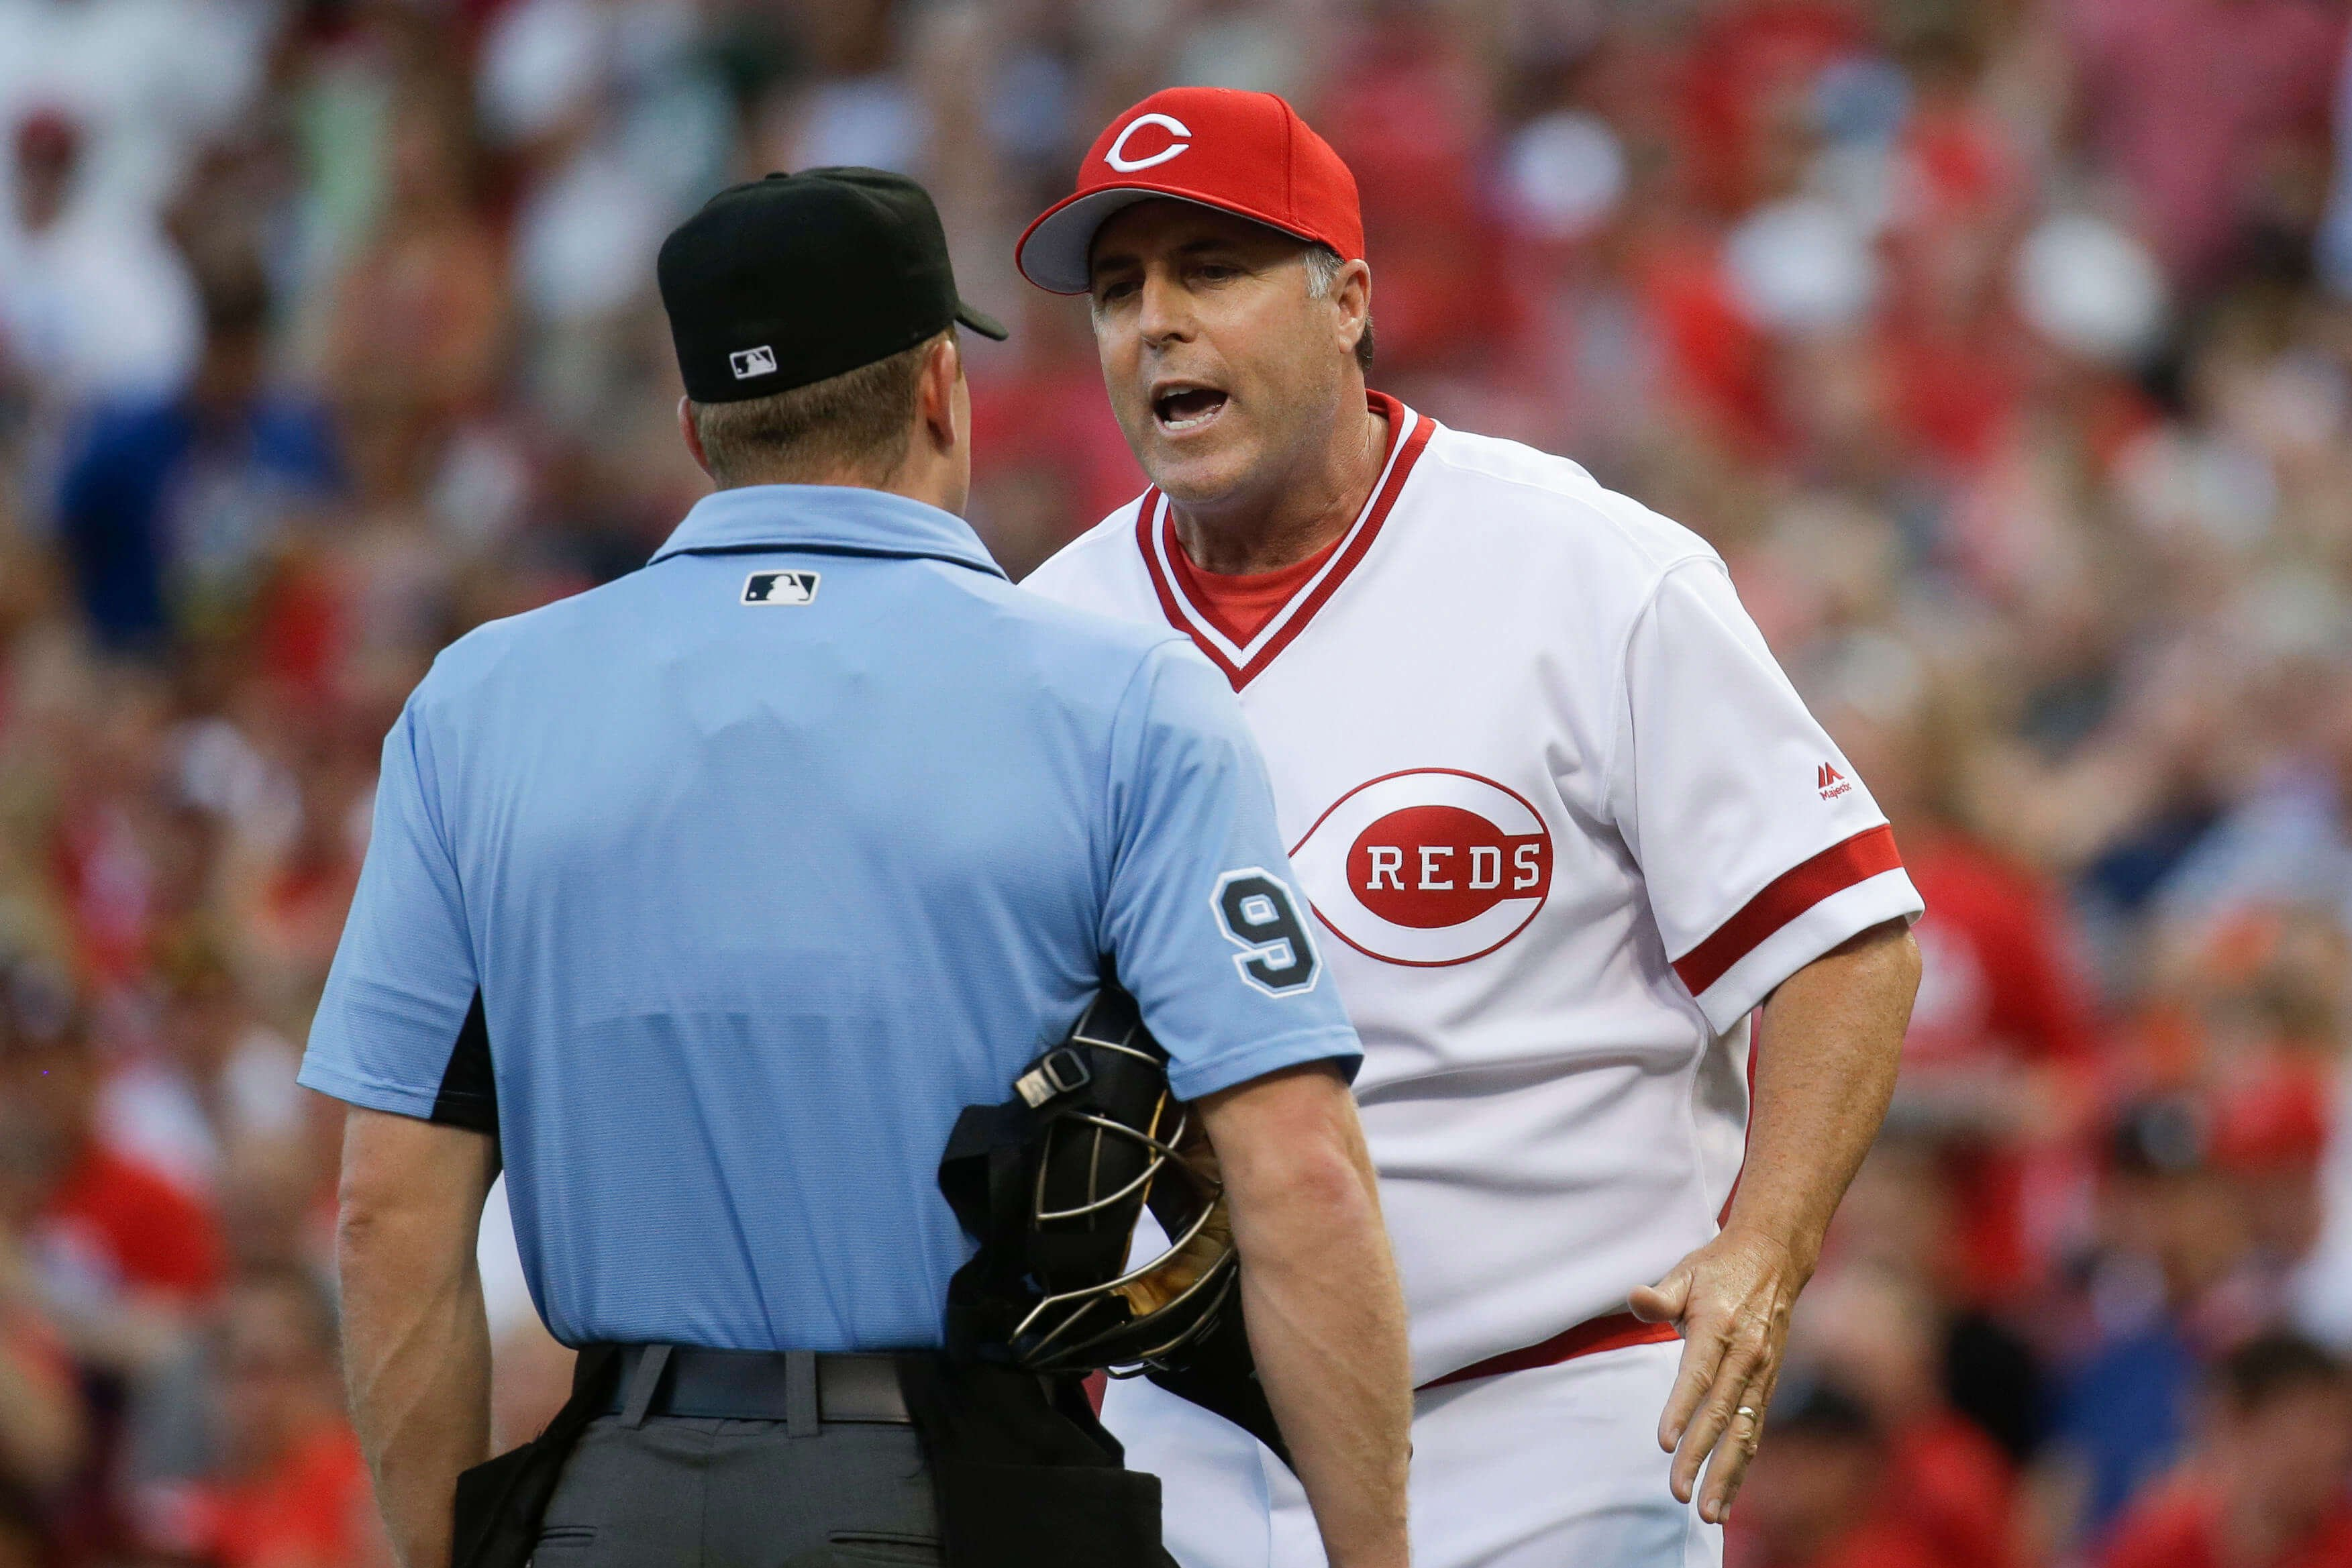 With baseball's worst record, Cincinnati Reds fire manager Bryan Price